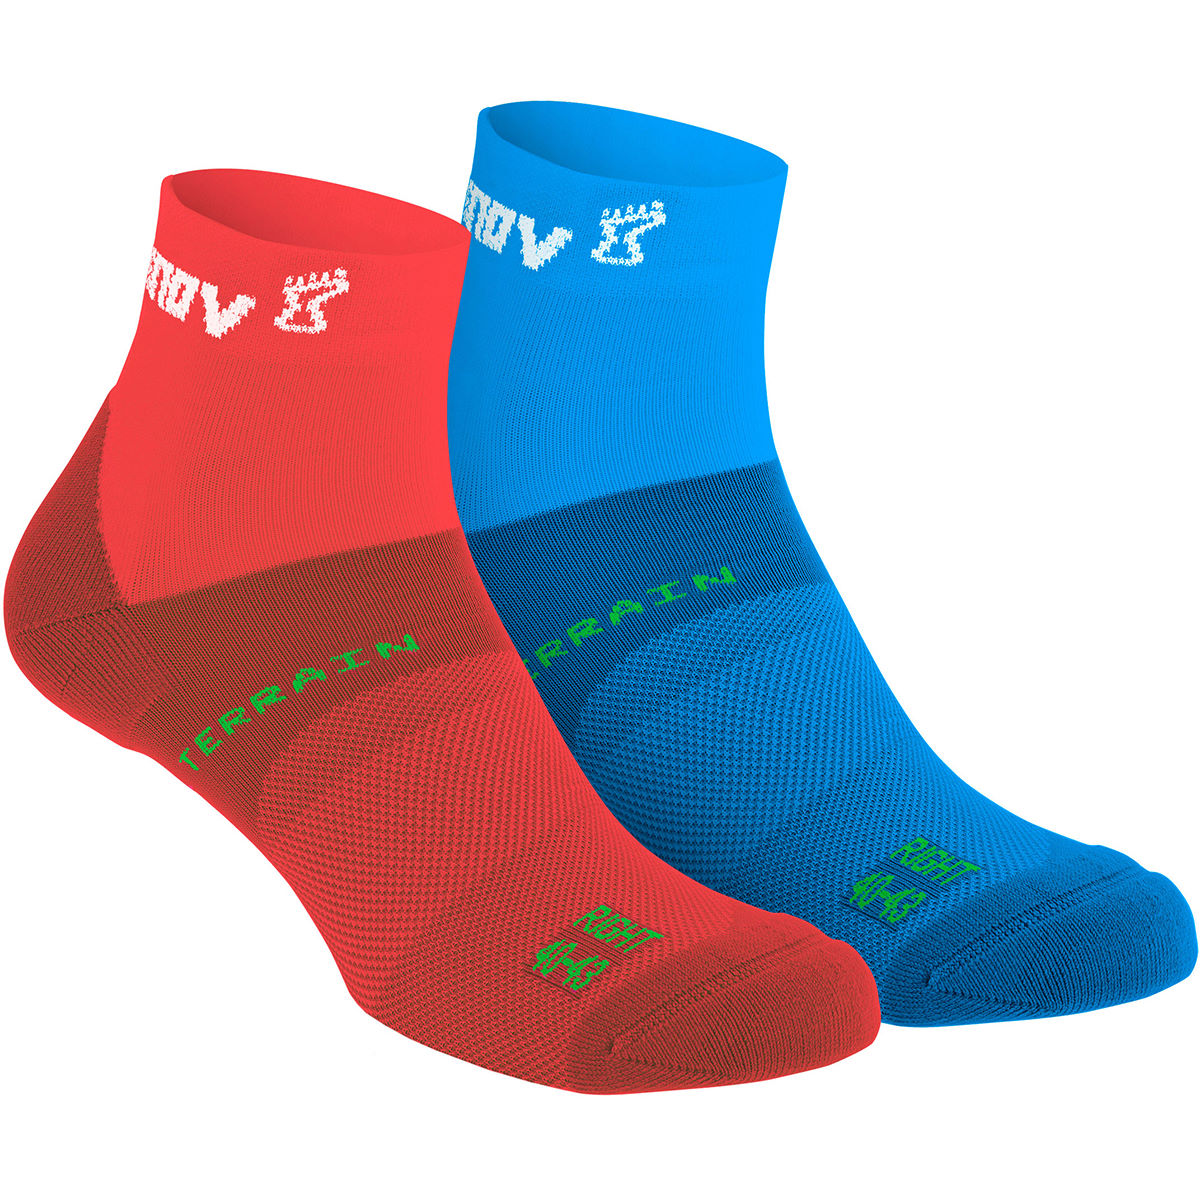 Chaussettes Inov-8 All Terrain Sock Mid (lot de 2 paires) - S Red/Blue Chaussettes de running